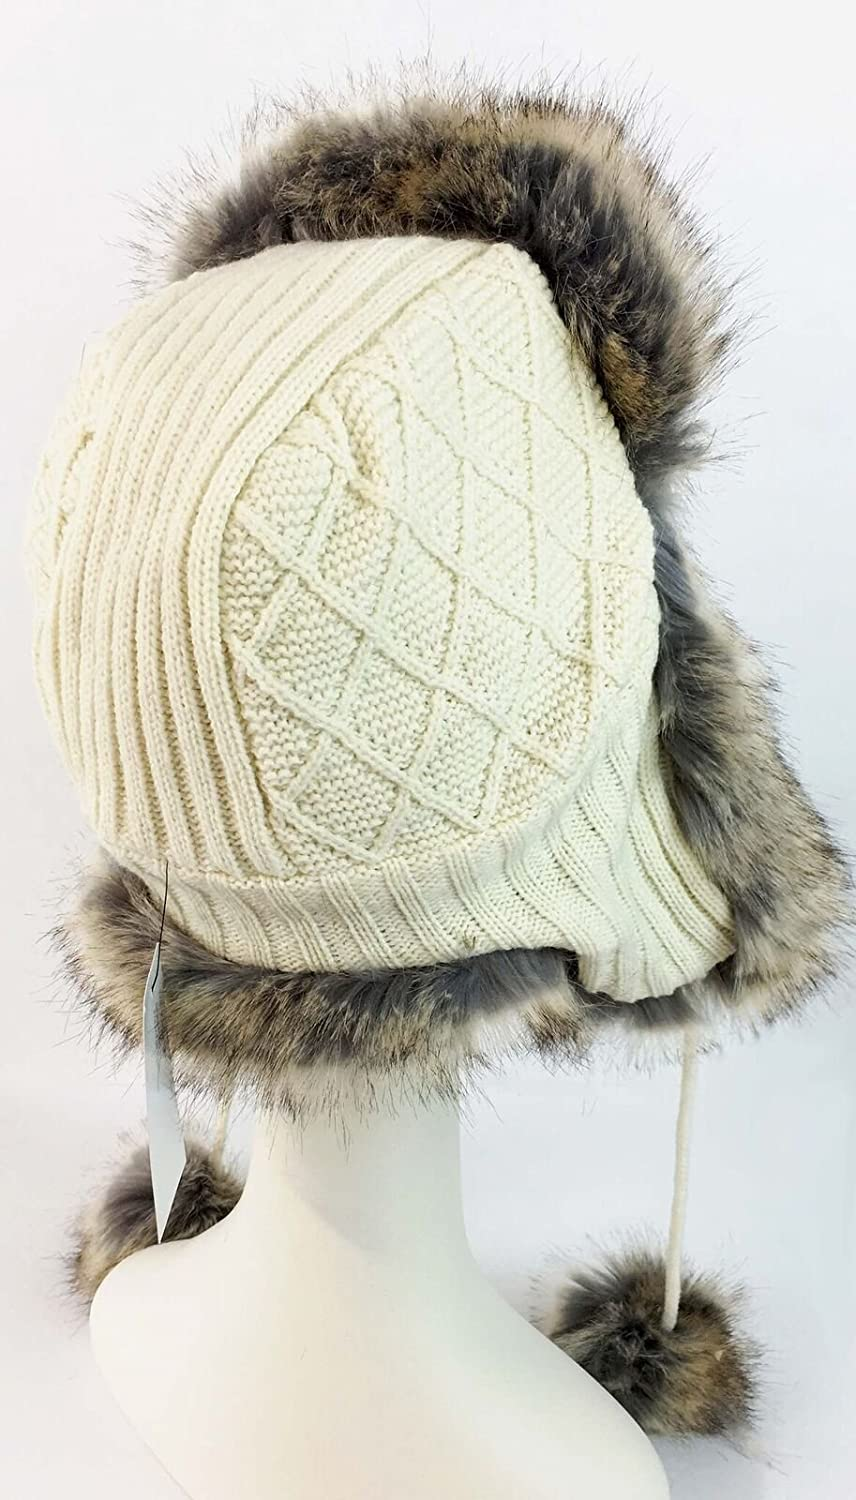 surell Faux Fur Knit Trooper with Faux Coyote Fur Pom Womens Winter Fashion Ivory